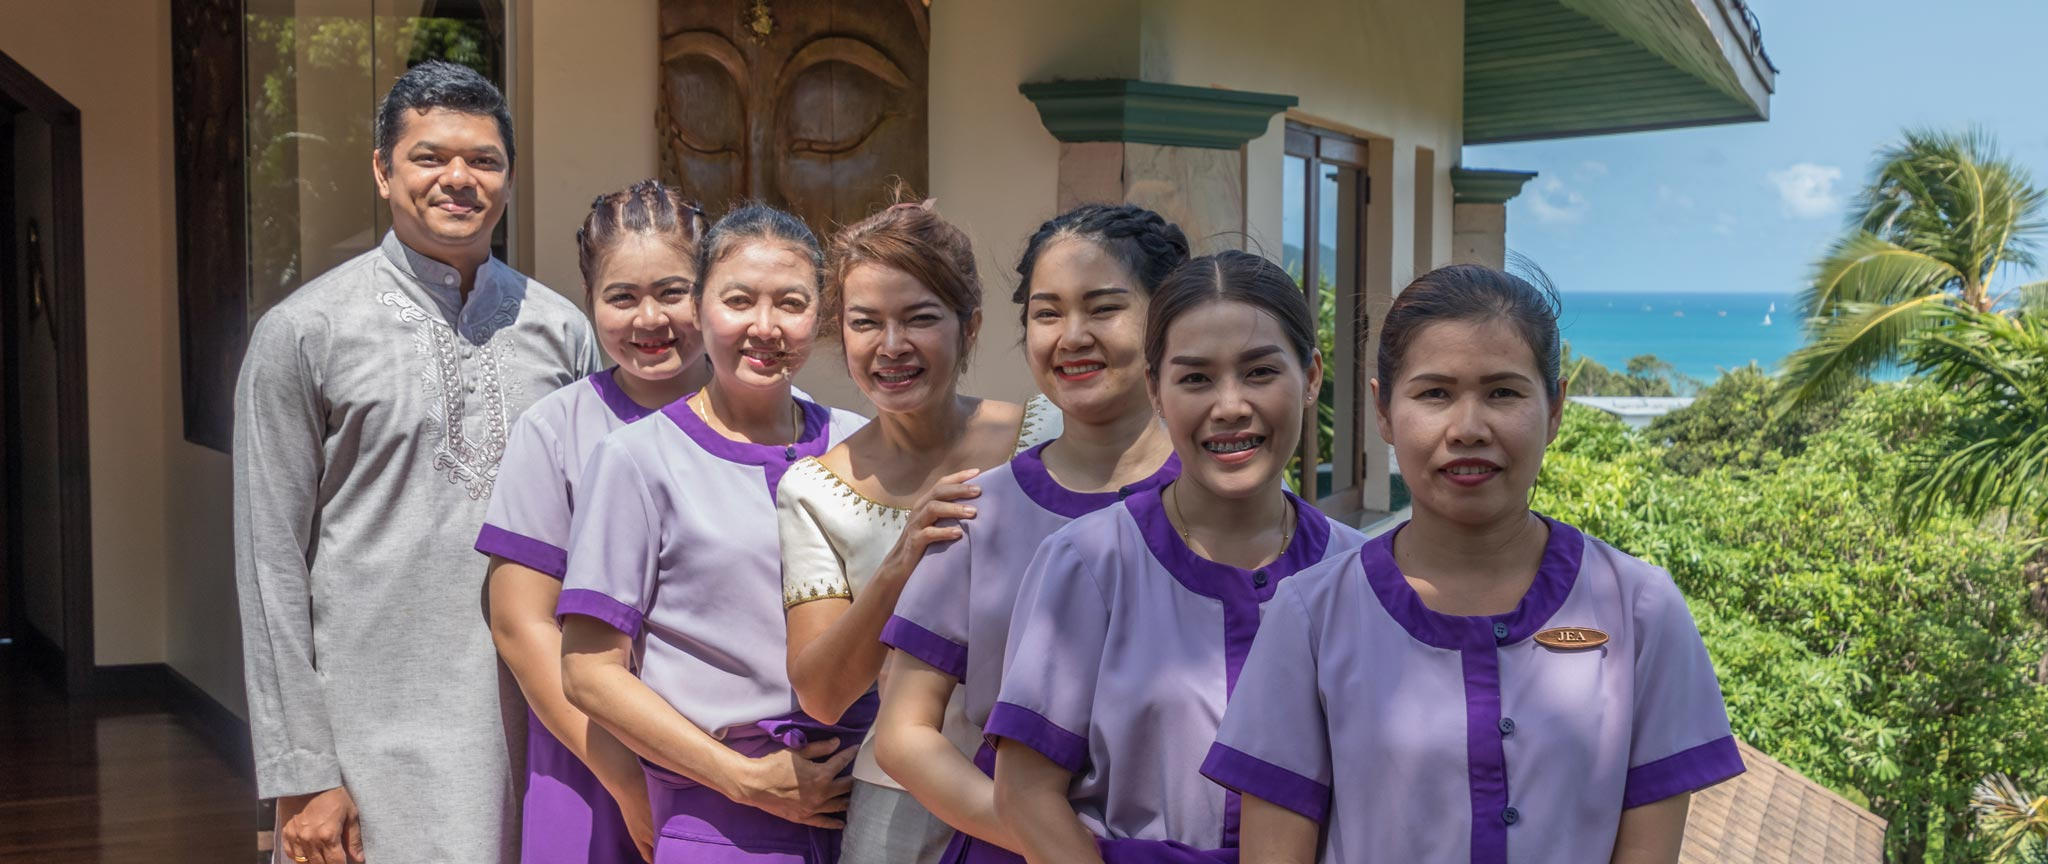 The Mangosteen Spa Team welcomes your to the Mangosteen Ayurveda & Wellness Resort, Rawai, Phuket.